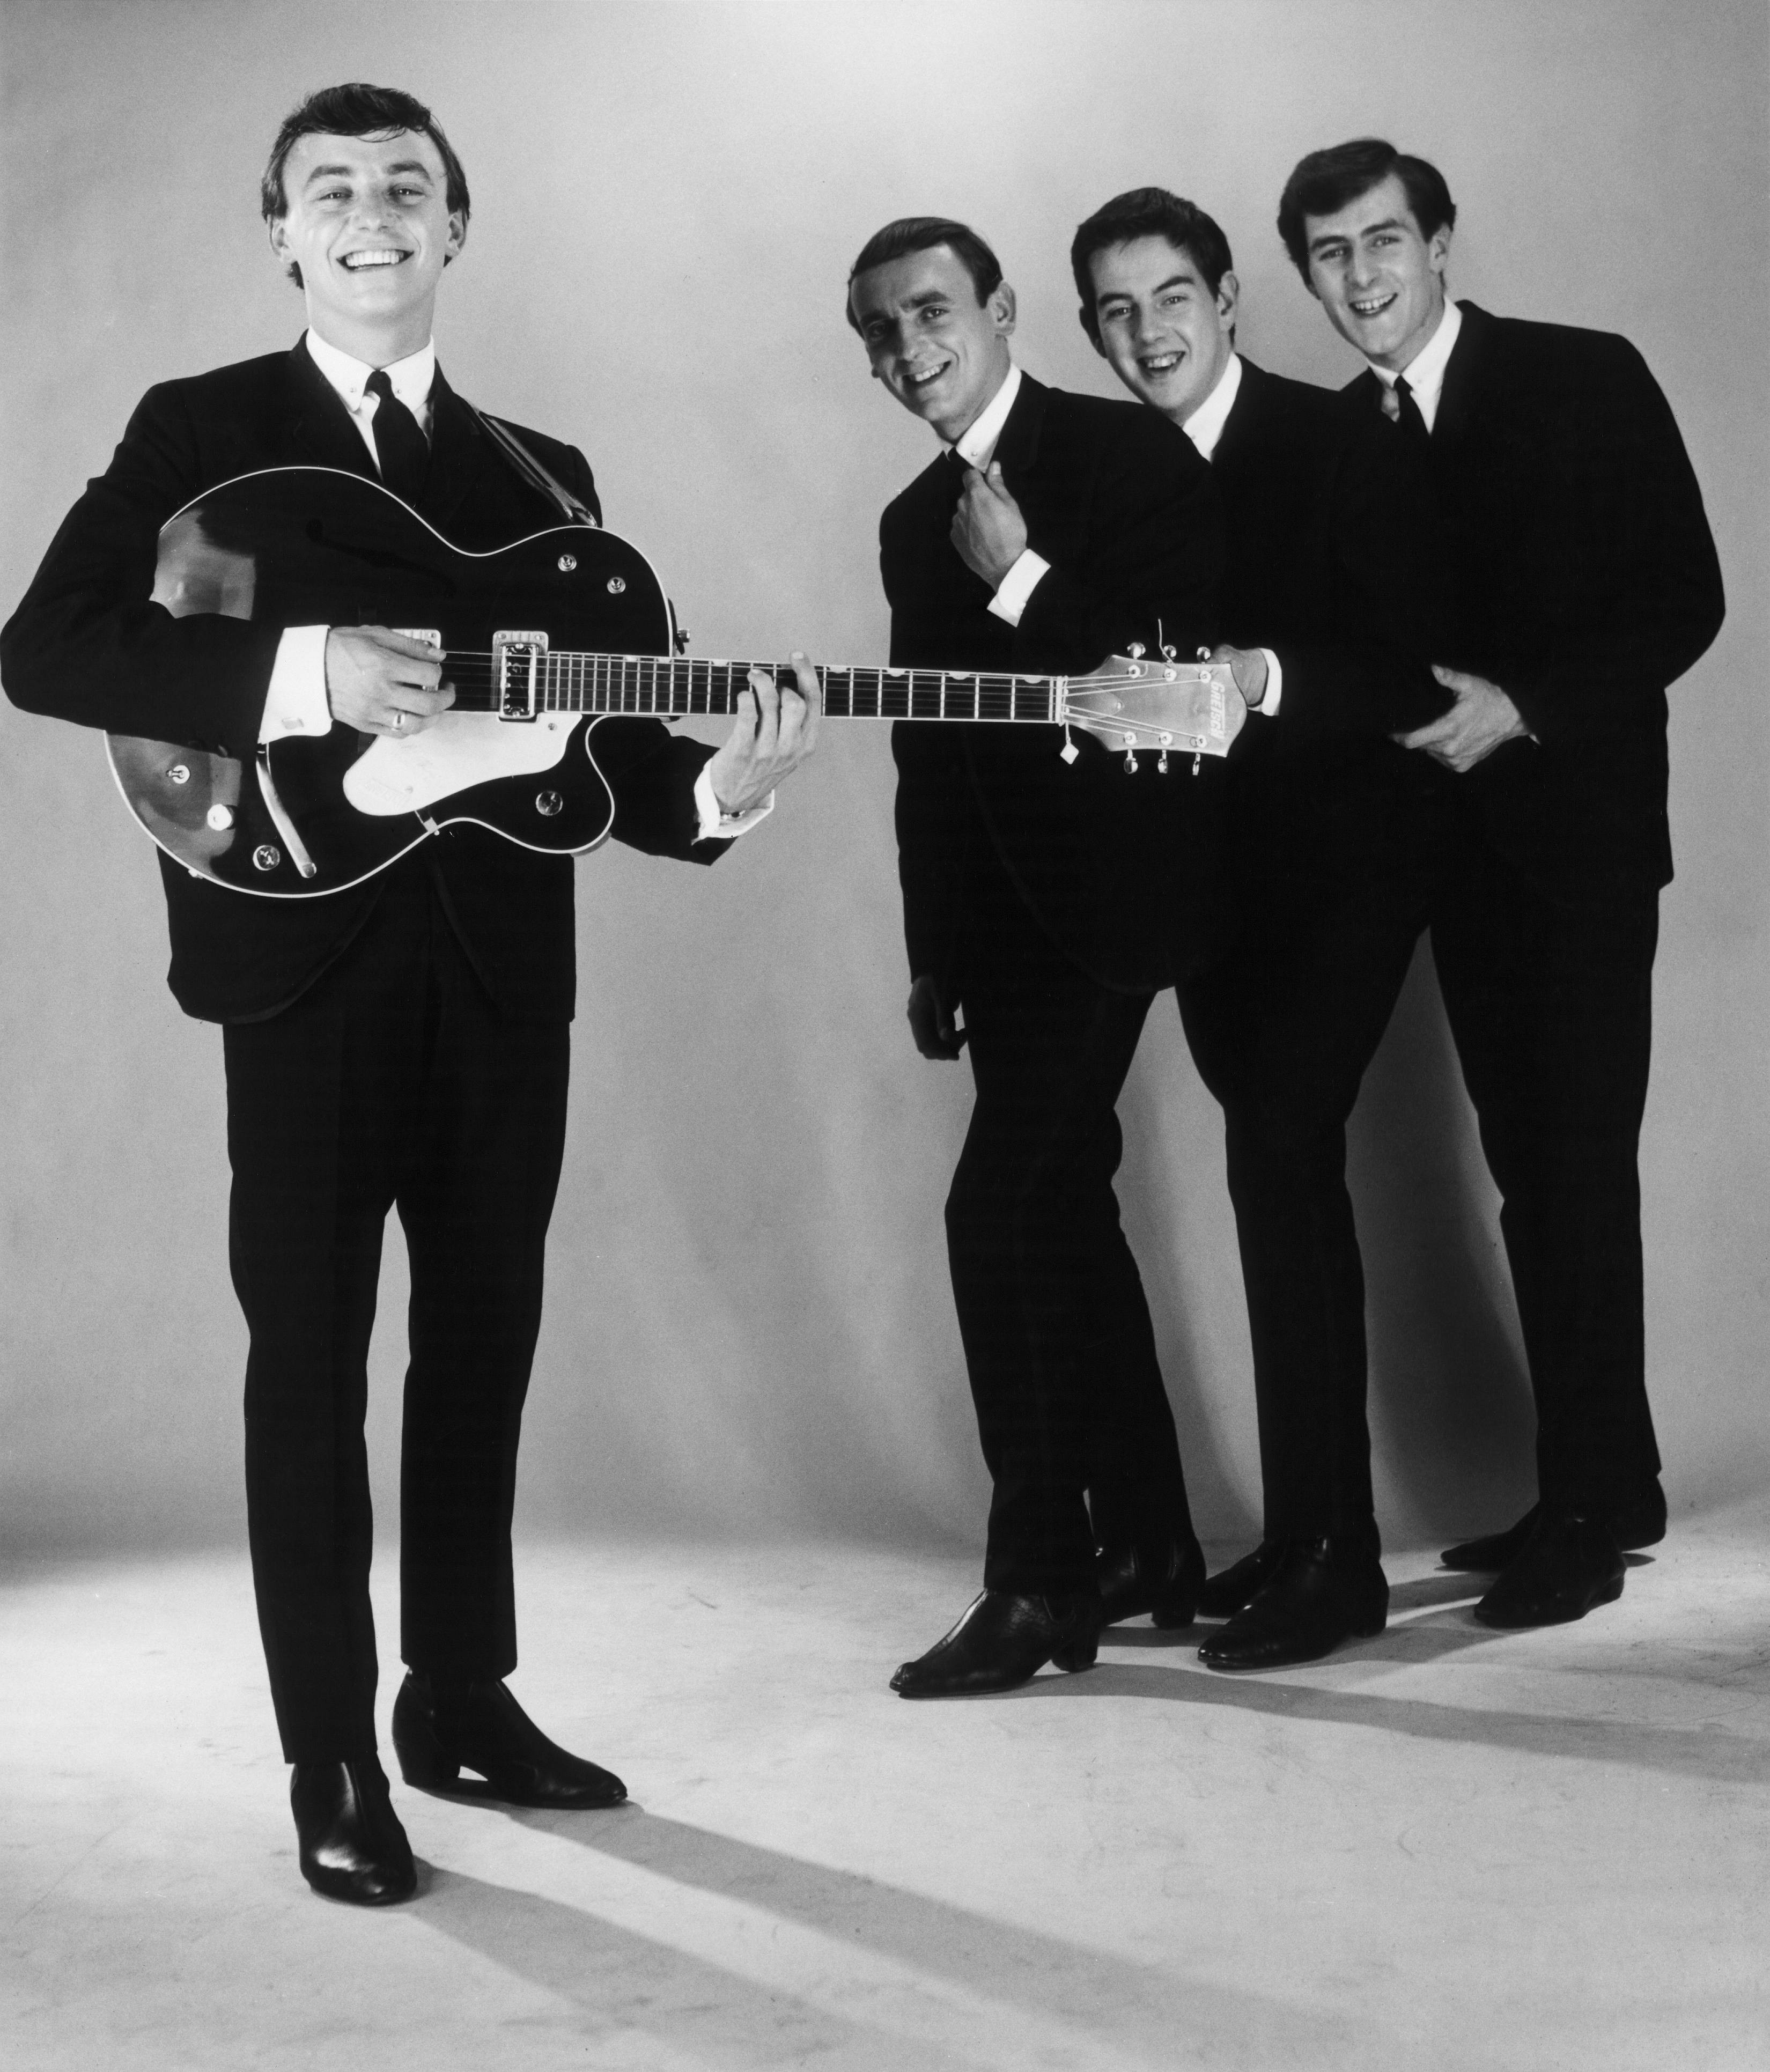 A banda Gerry and the Pacemakers